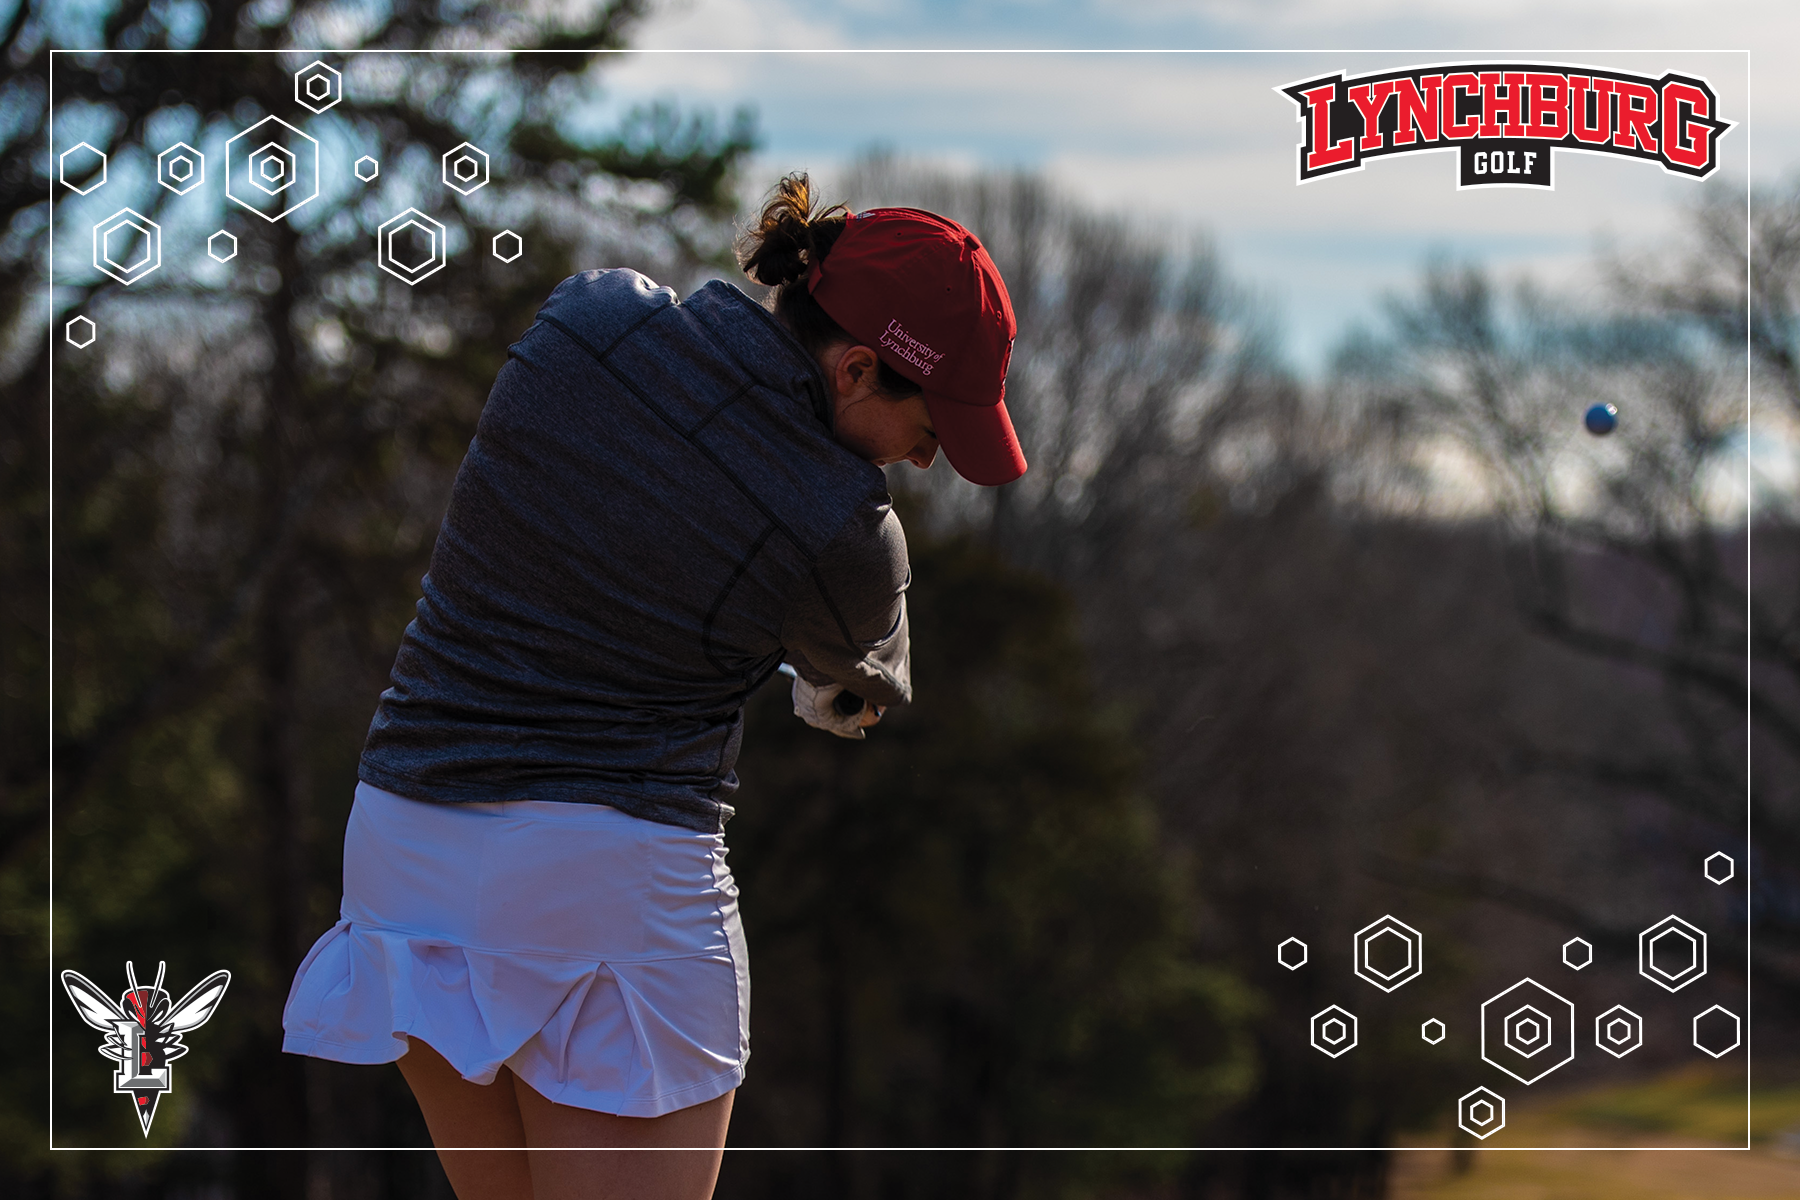 Photo of women's golfer swinging a club